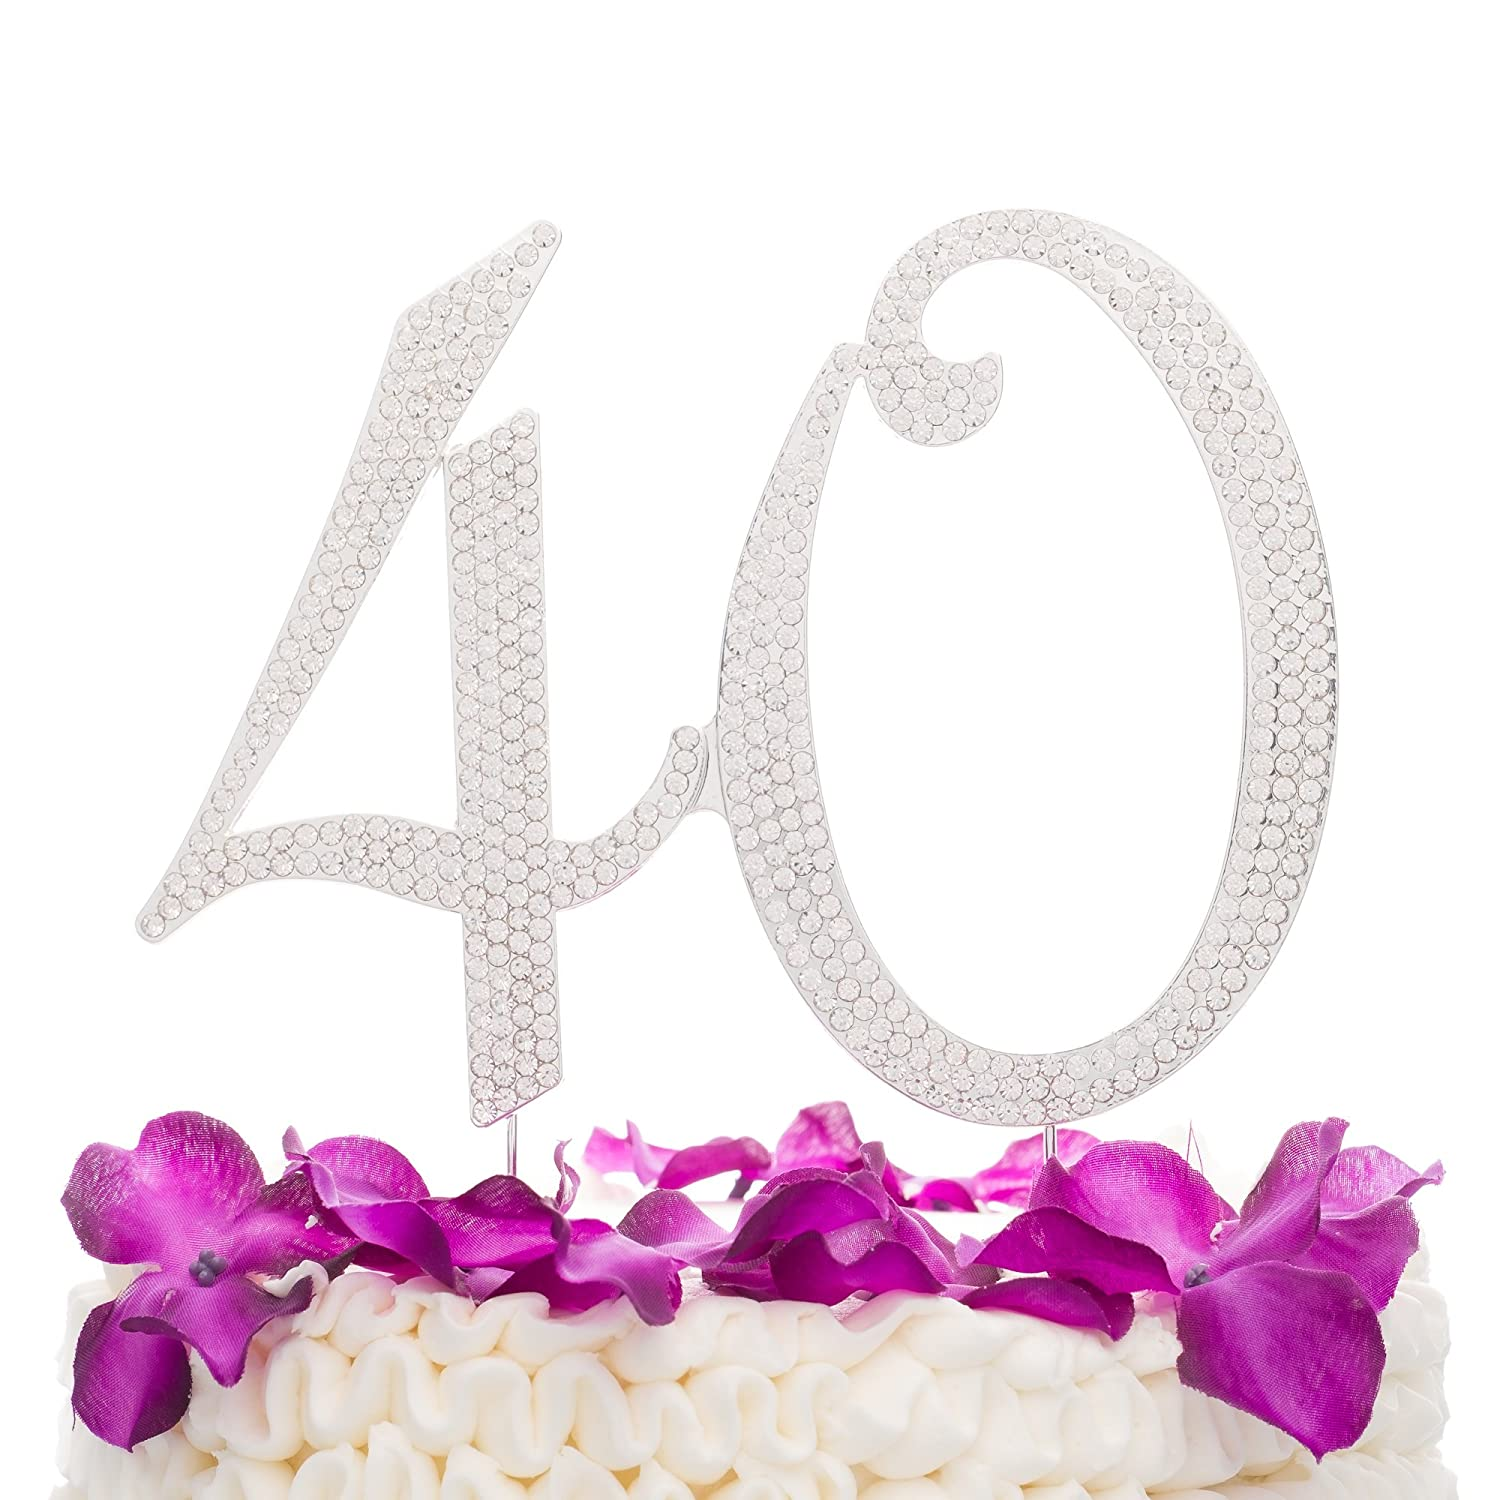 Amazon Ella Celebration 40 Cake Topper For 40th Birthday Or Anniversary Party Supplies Silver Decoration Ideas Kitchen Dining